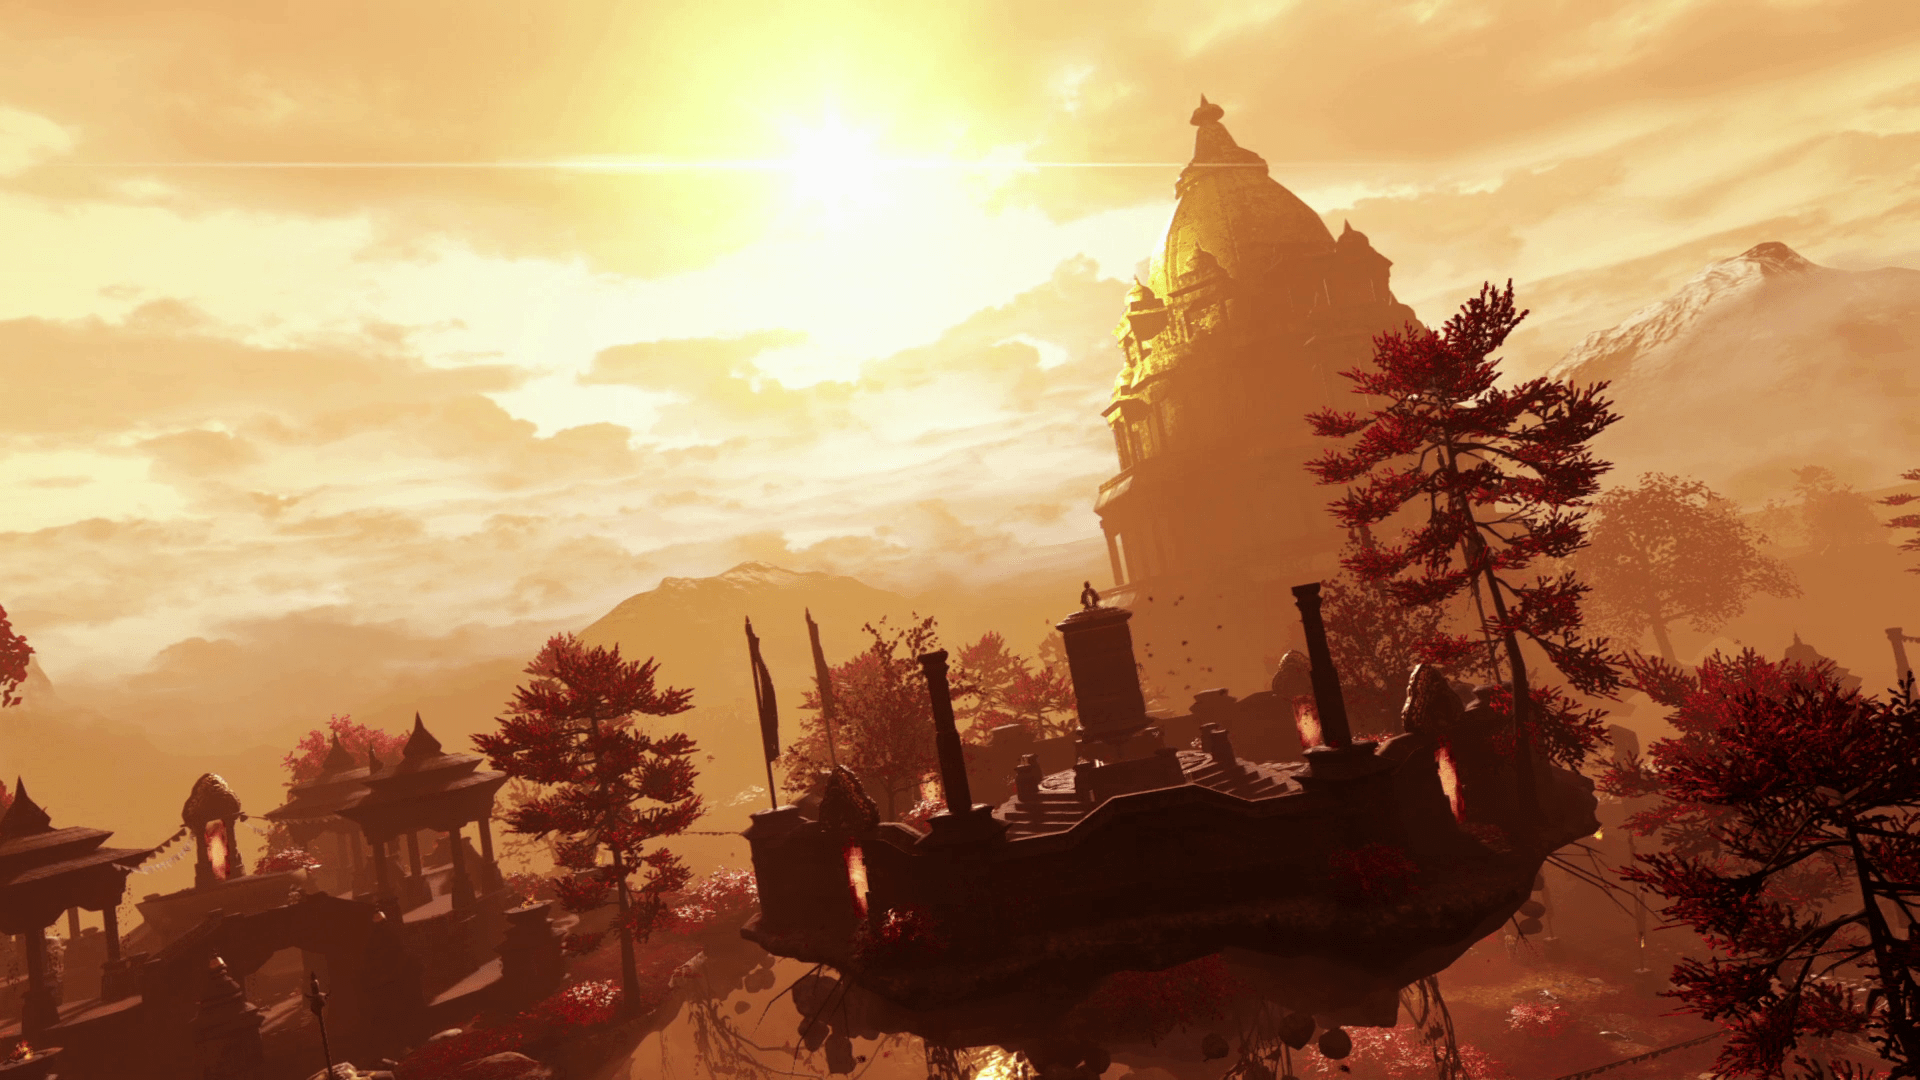 Iphone 5 Minecraft Wallpaper Far Cry 4 Full Hd Wallpaper And Background Image